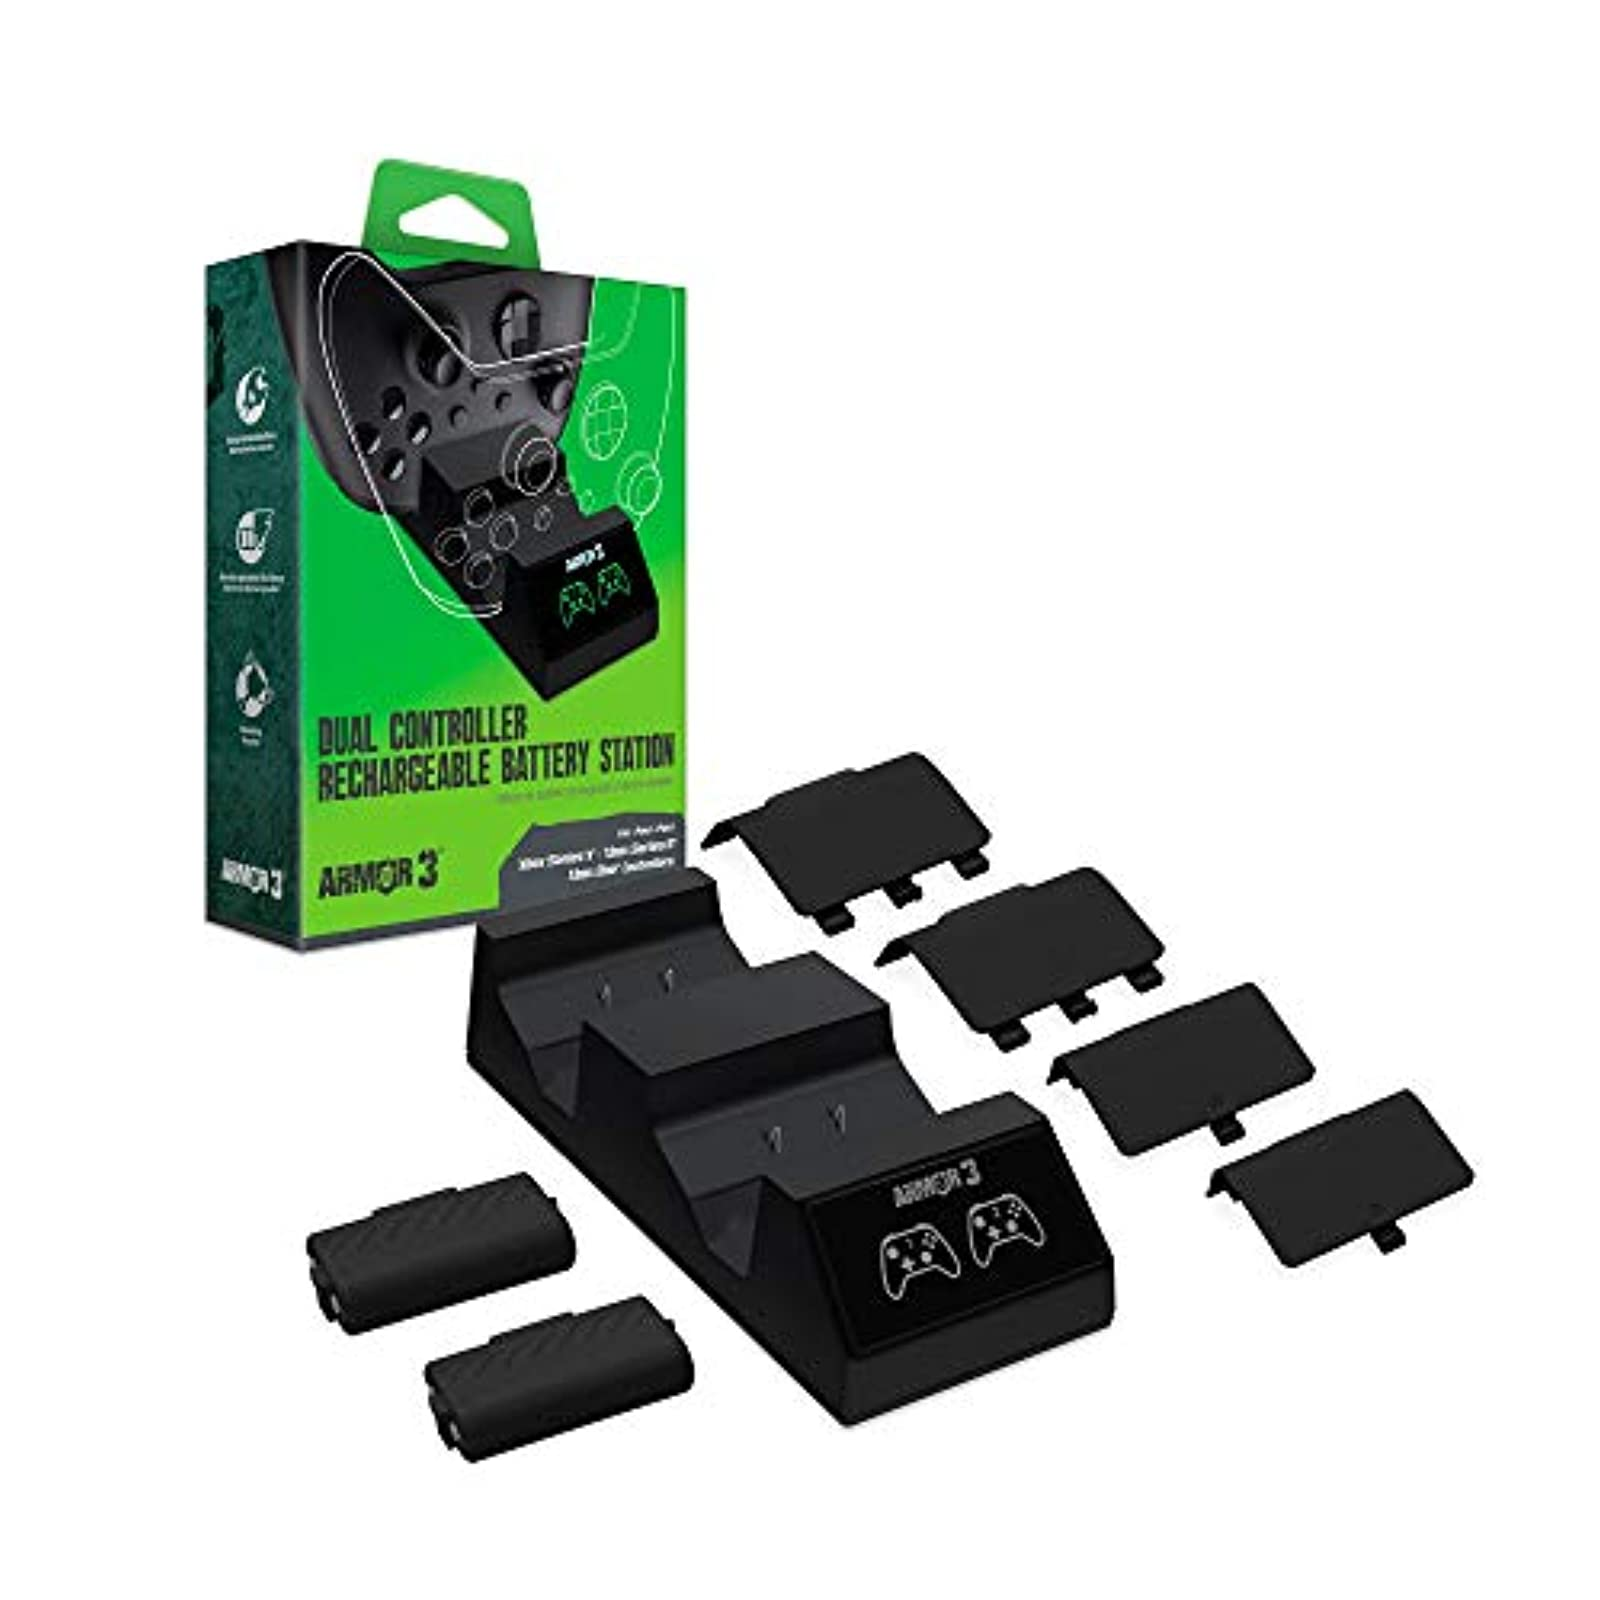 Armor3 Dual Controller Rechargeable Battery Station Xbox Series X And Xbox One